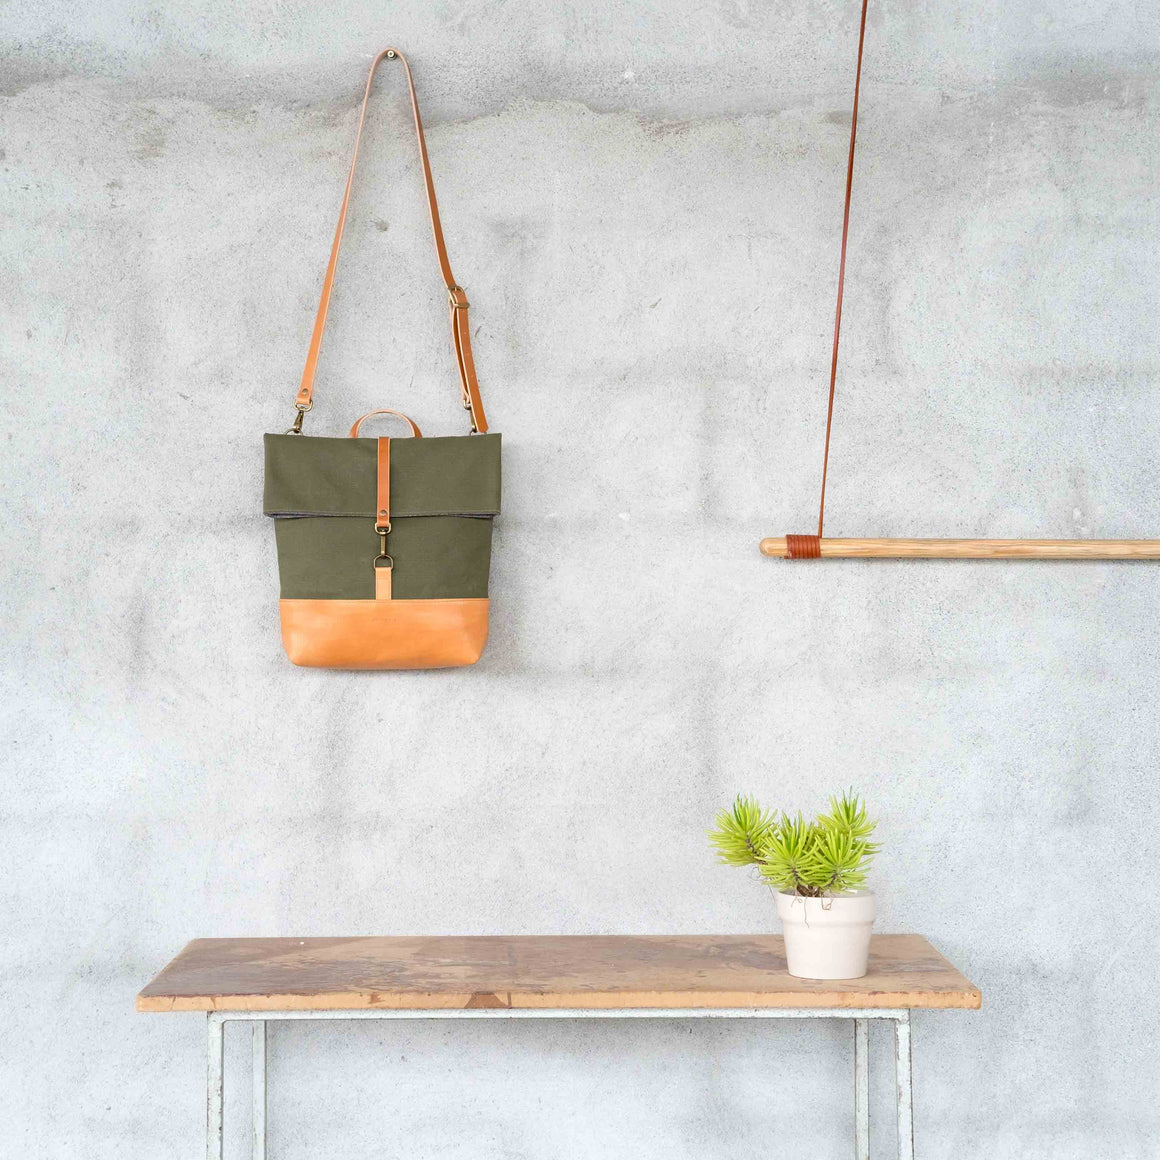 Gerda Shoulder bag / Khaki Canvas 24oz - Disponible el 1 de Julio